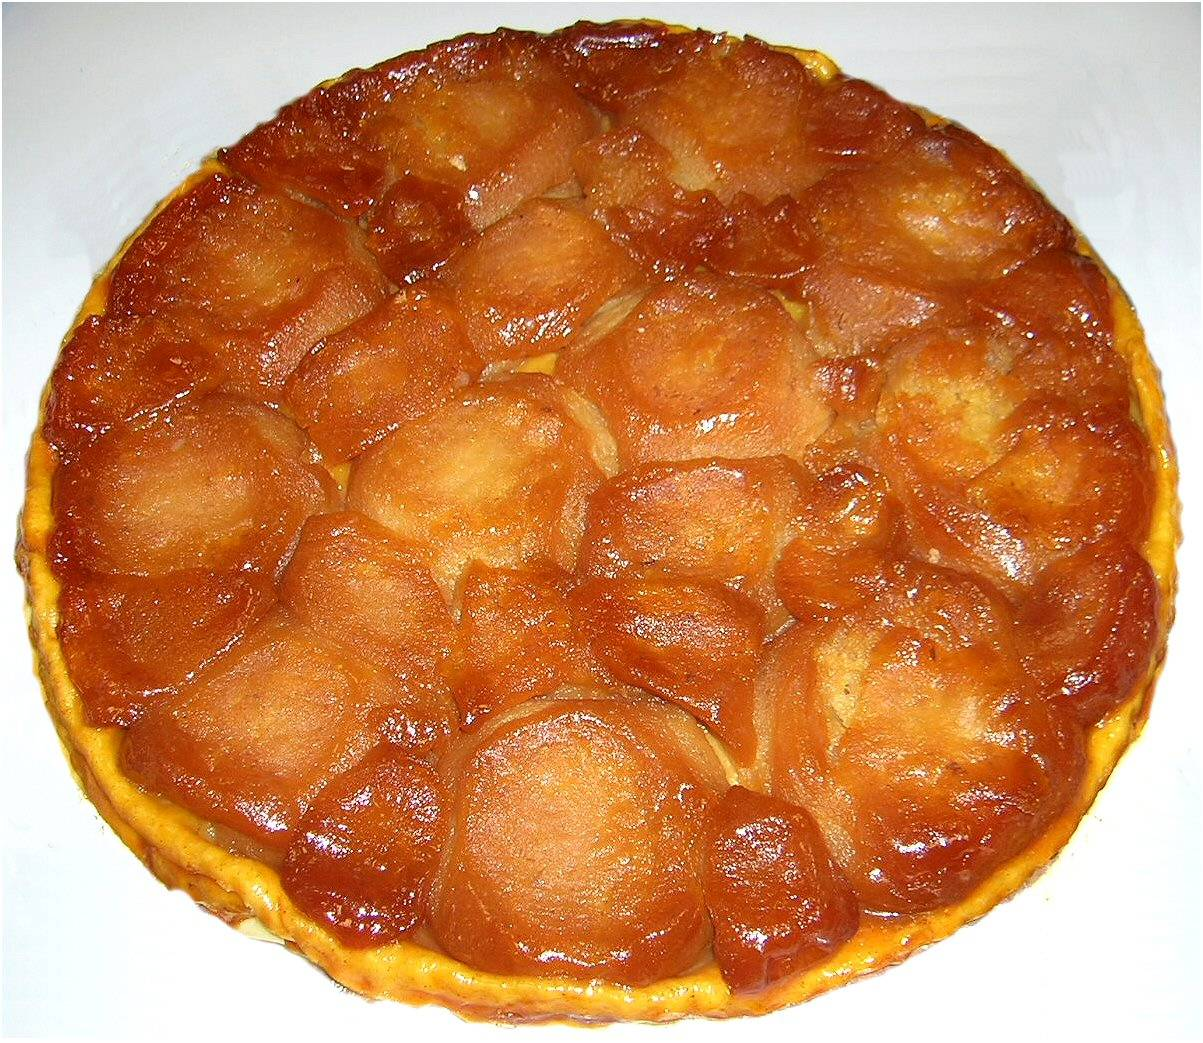 ... cheese iron pear tarte tatin spiced pear tarte tatin apple tarte tatin